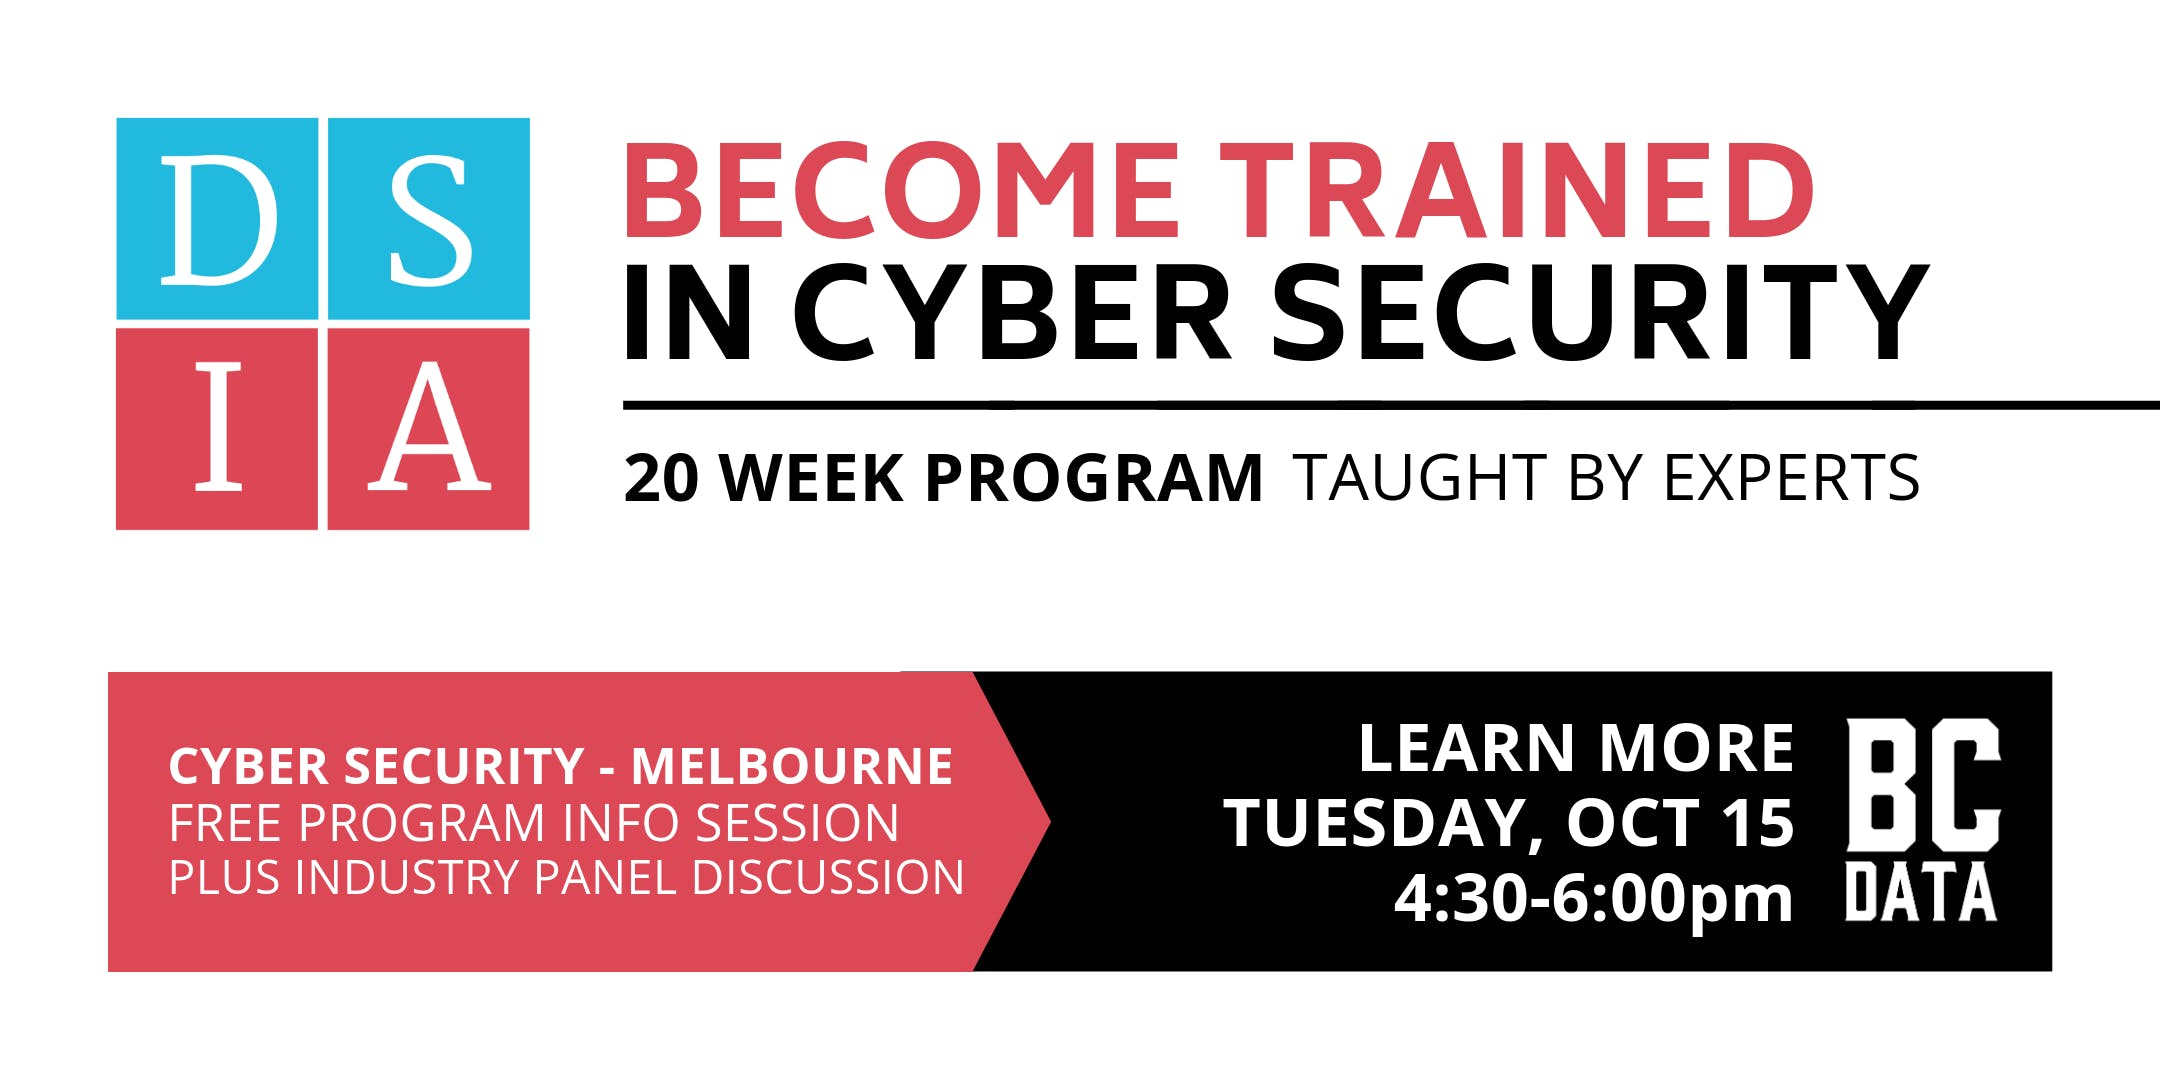 Become Trained in Cyber Security